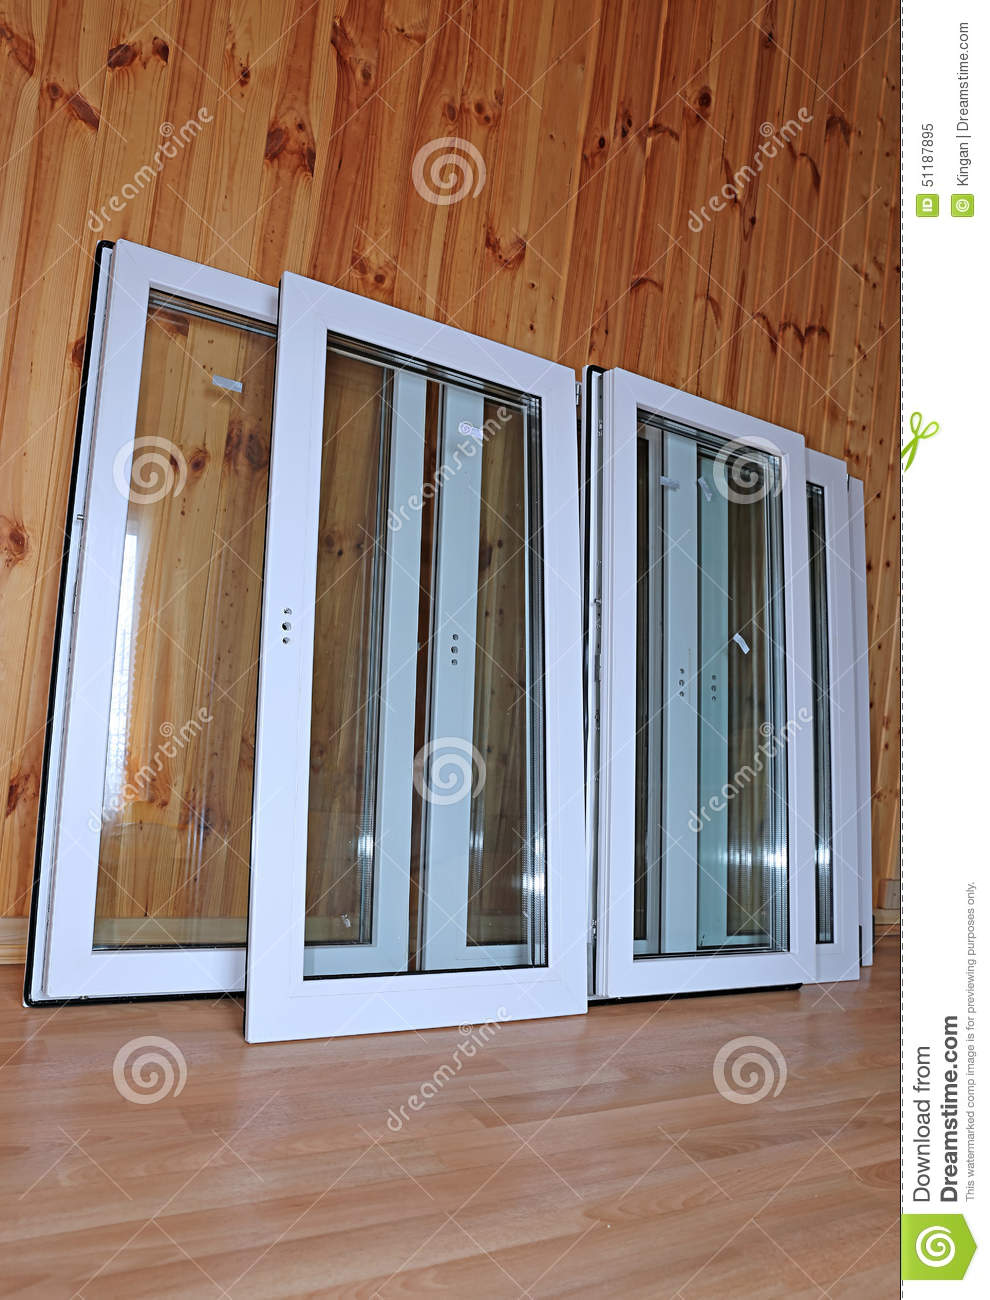 Installing plastic windows in a wooden house do it yourself 63